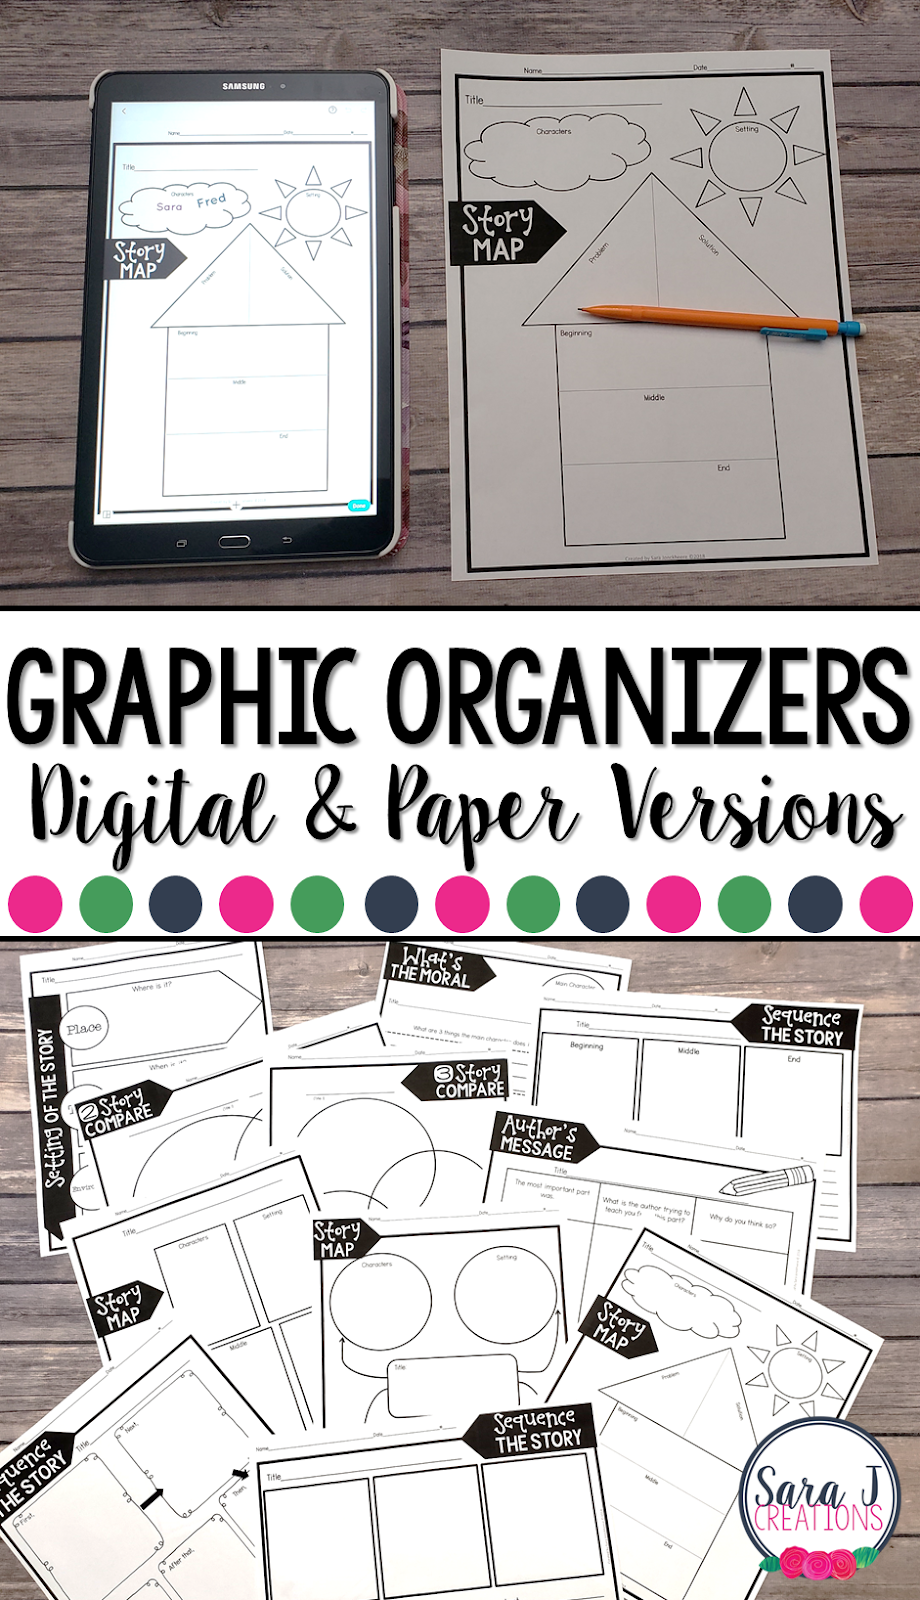 40 graphic organizers that can be printed and also includes the digital version to be used with the PicCollage App. Check out the video for tips on going paperless and using the PicCollage App.